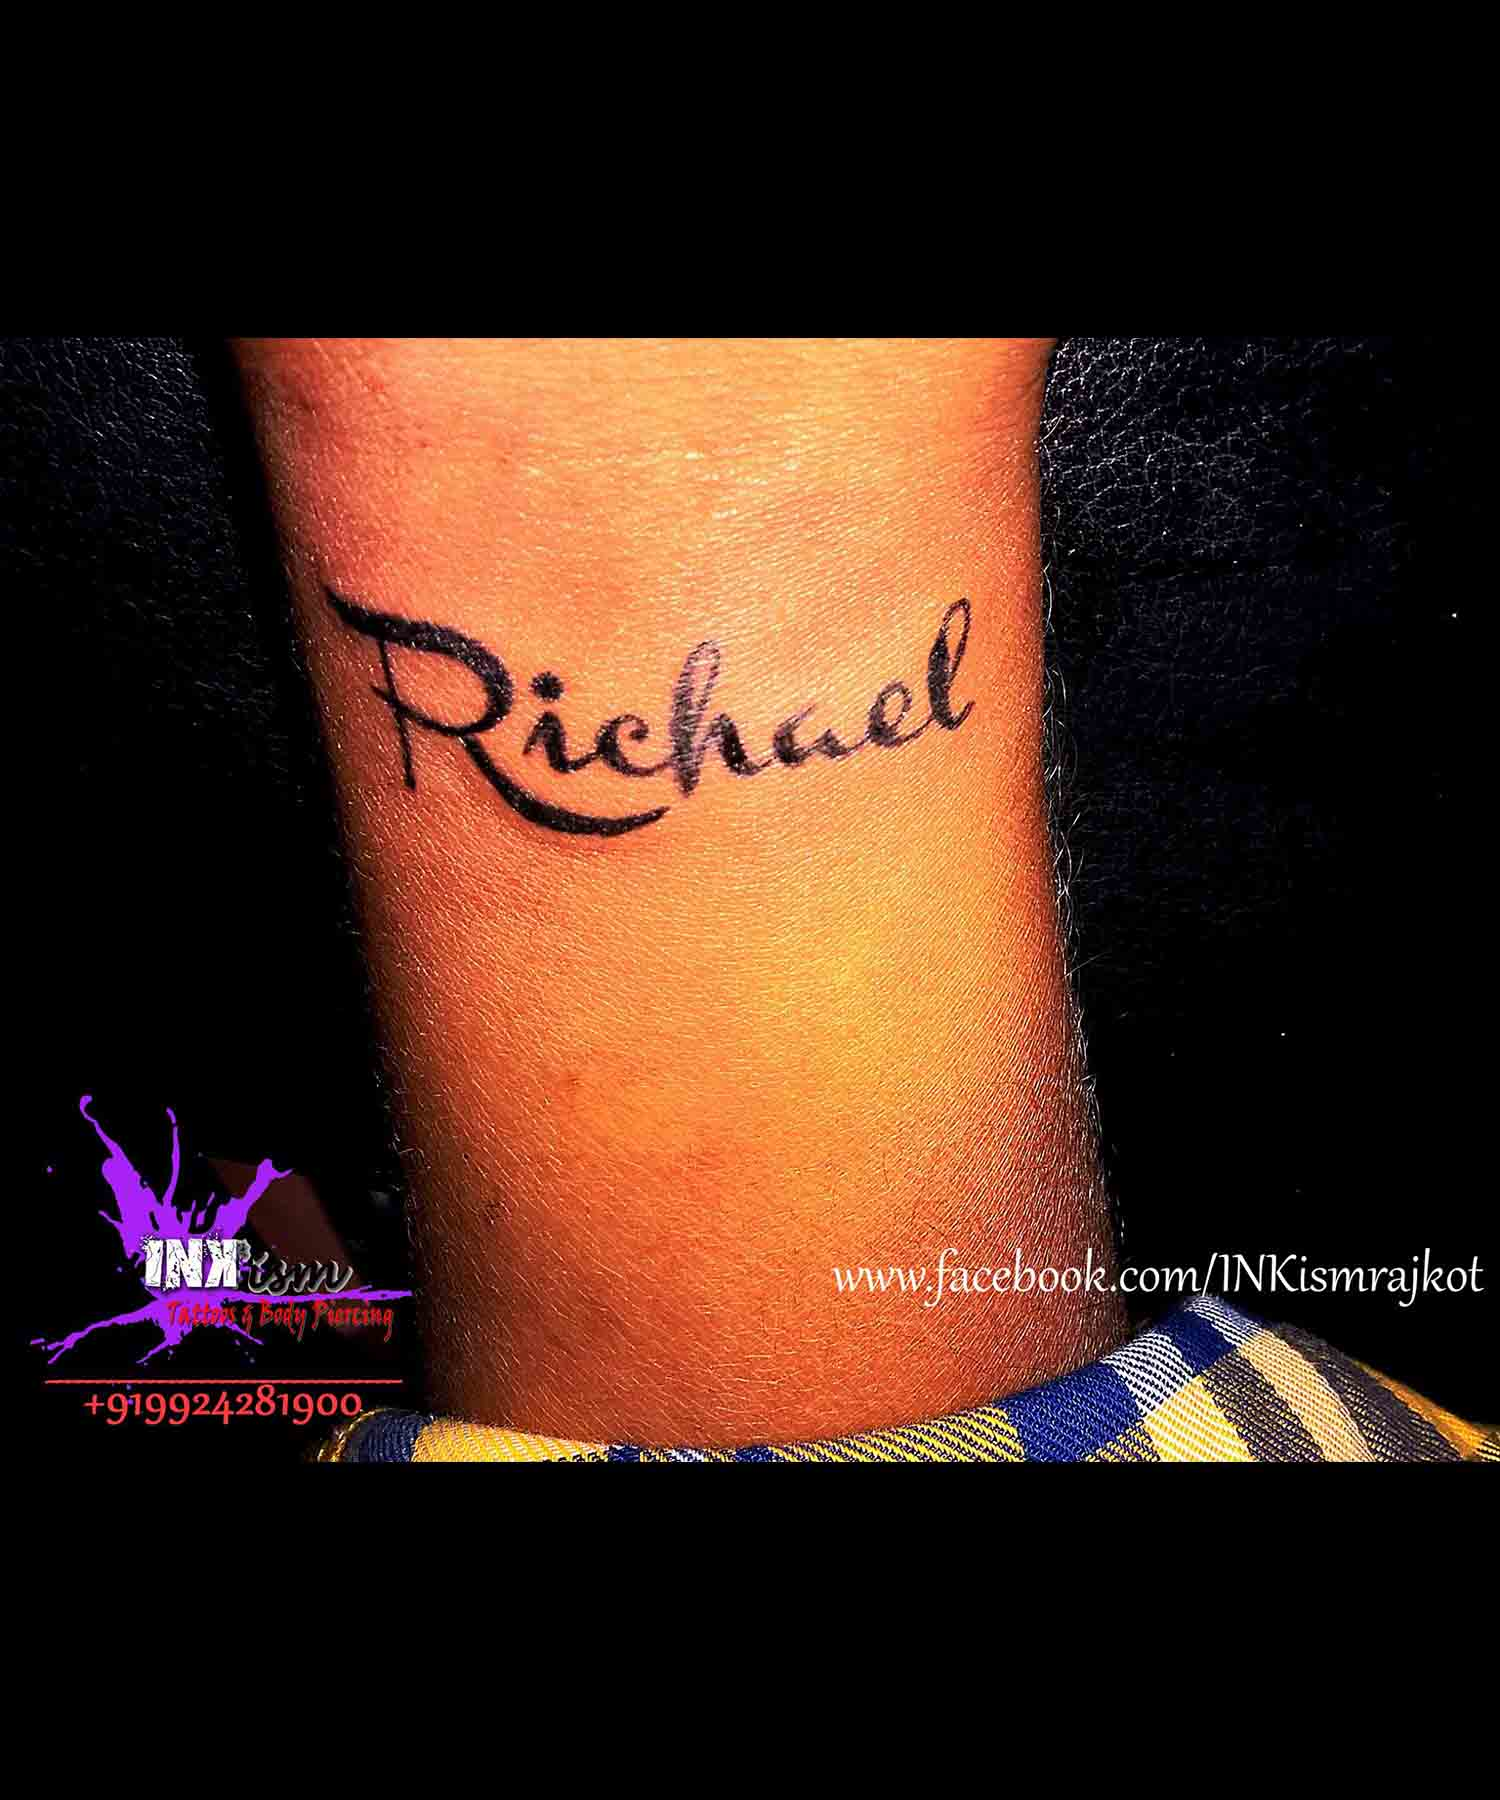 Calligraphy name tattoo, Daughters name tattoo, Inkism tattoo and body piercing rajkot gujarat